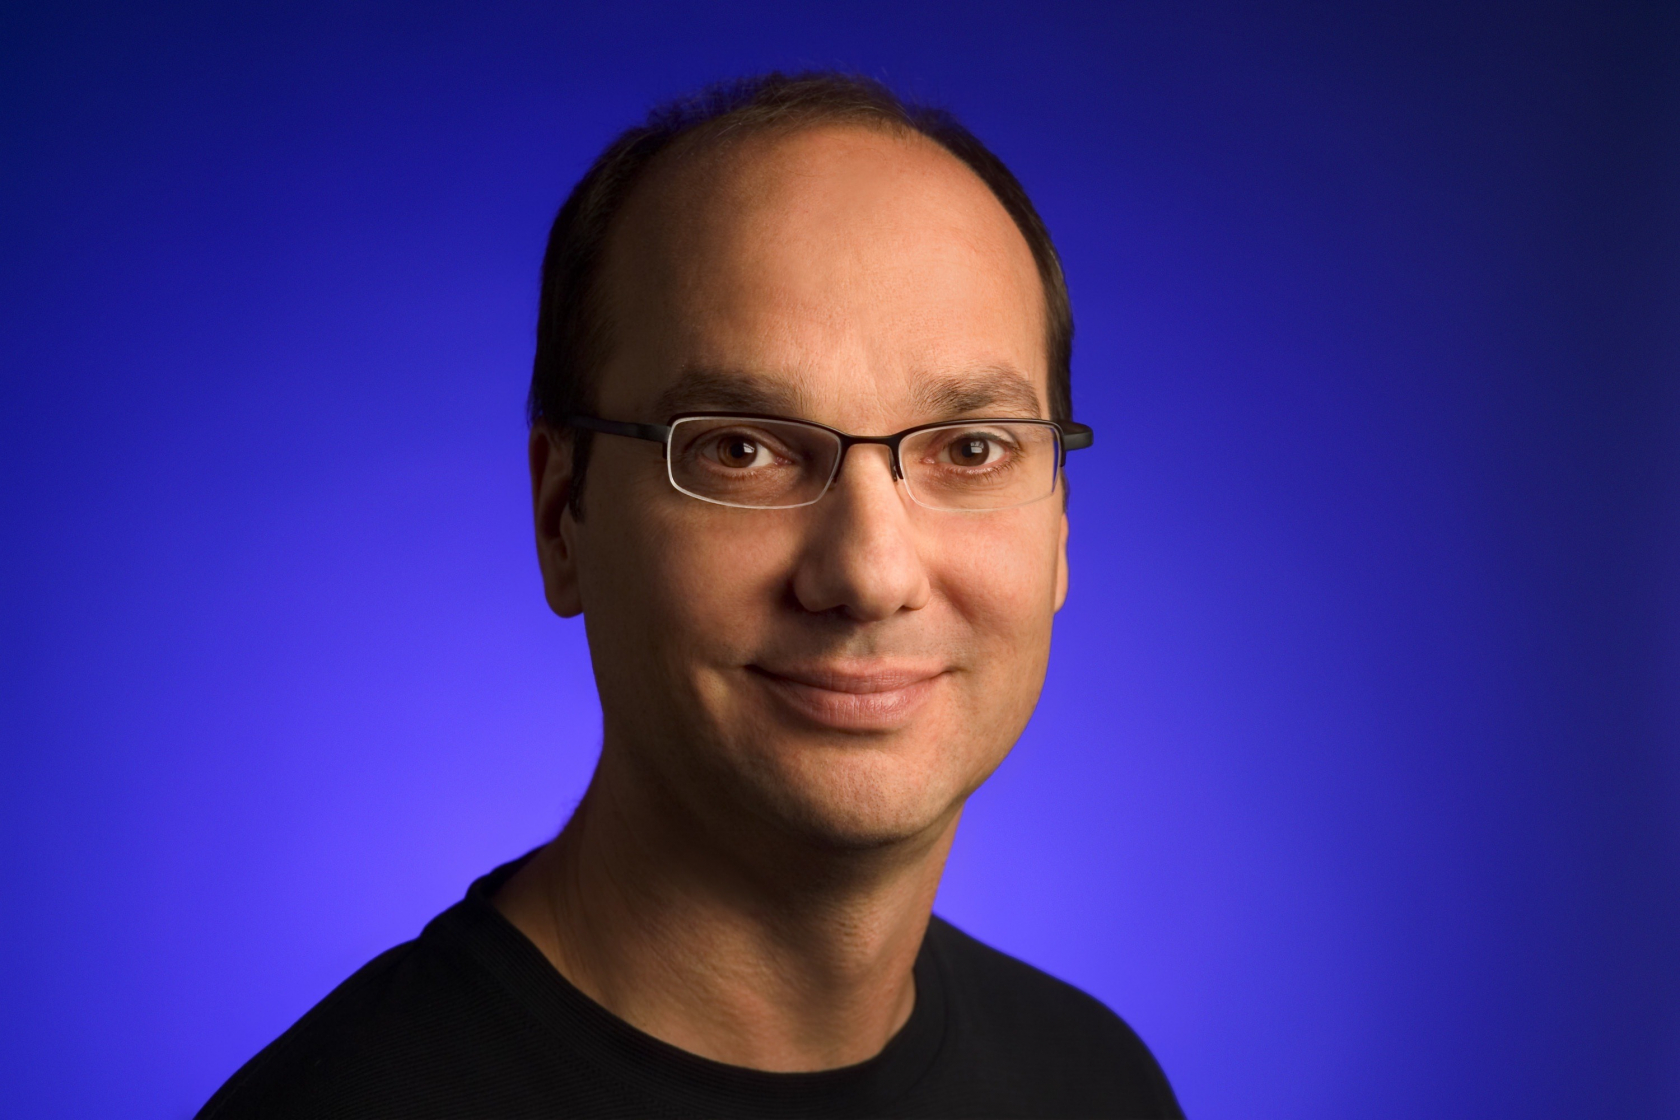 Android co-creator takes leave of absence from Essential